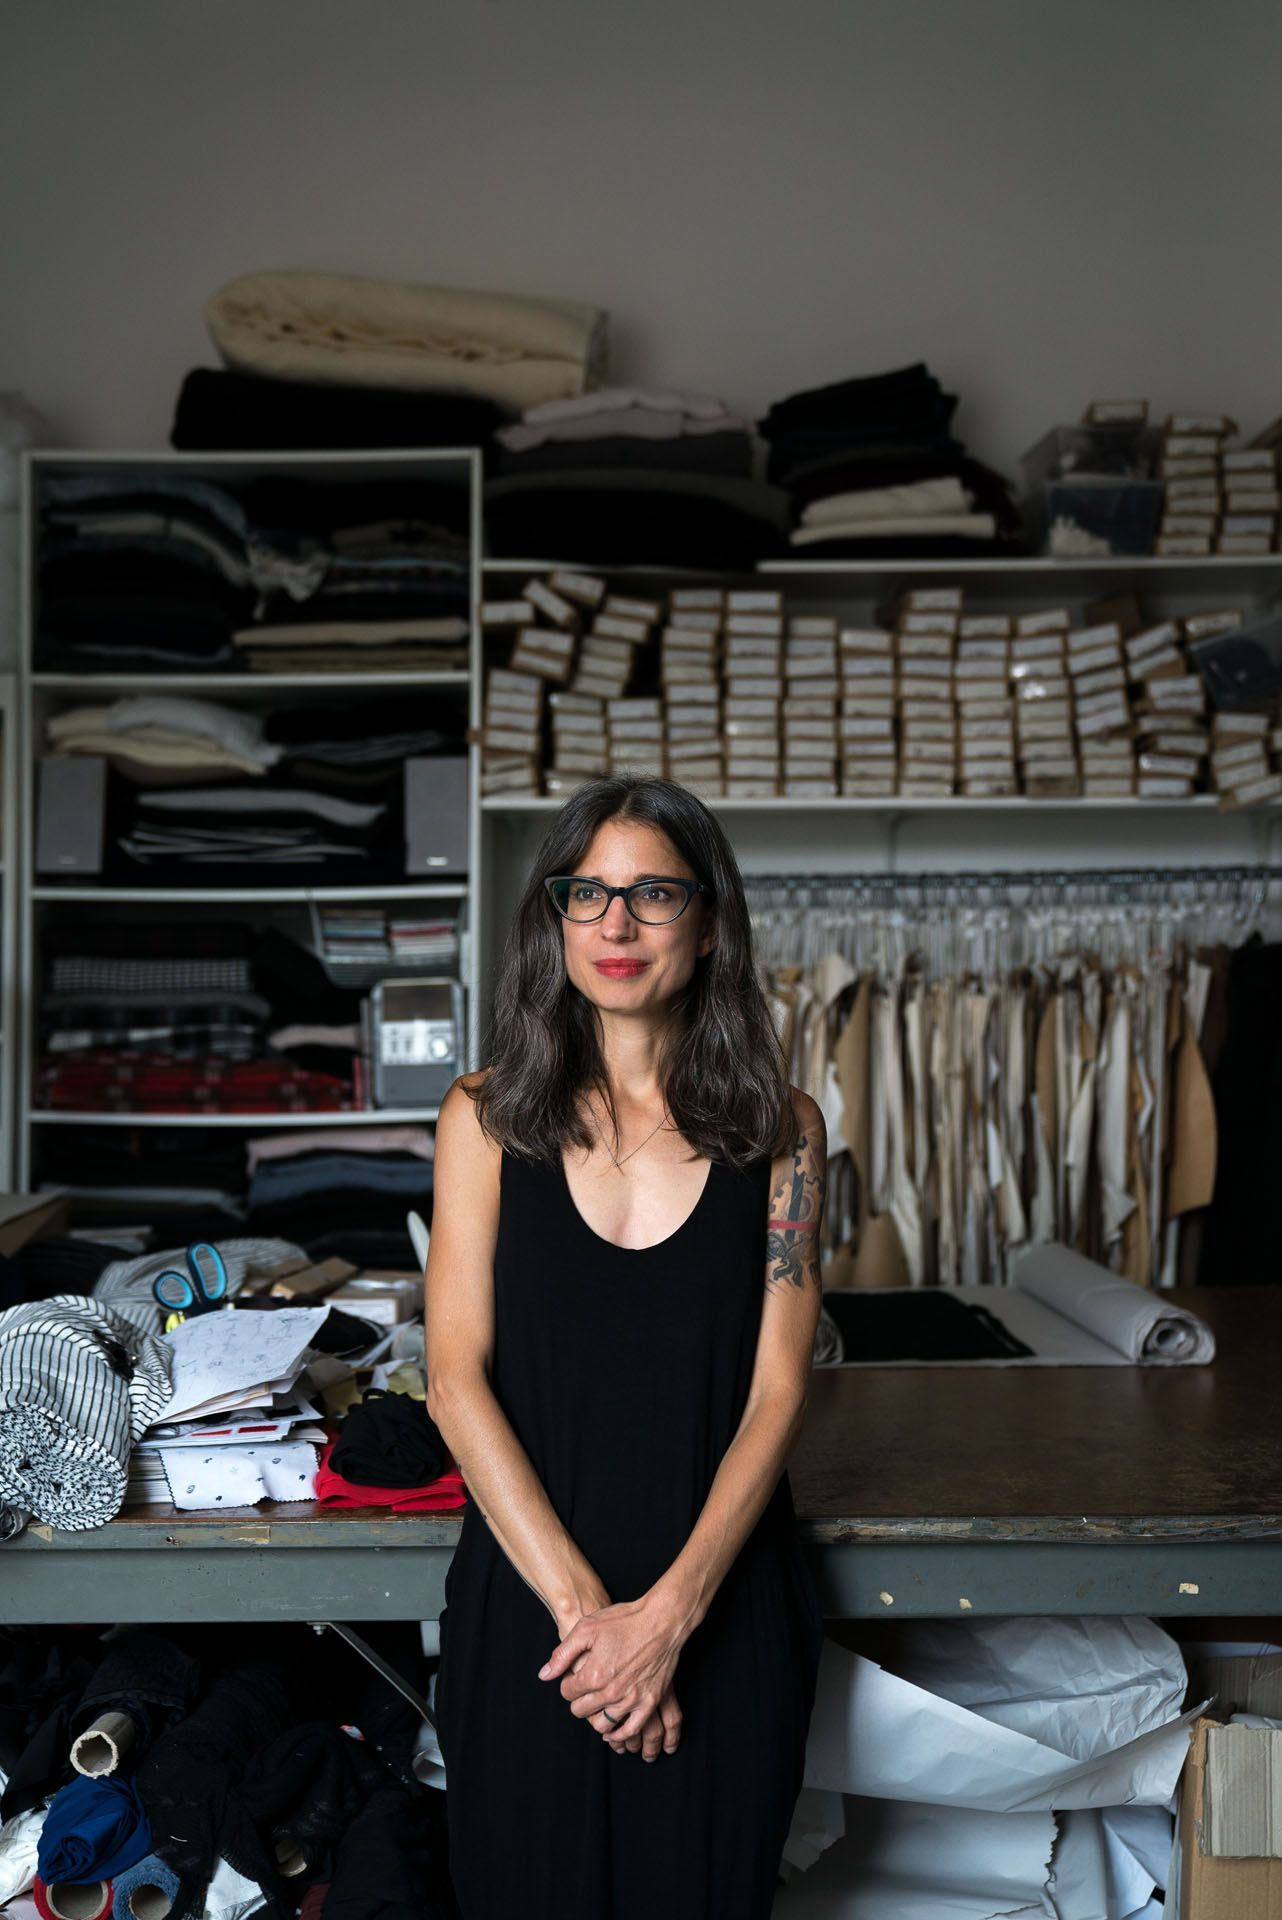 brown haired woman seamstress looking away posing in front of worktable with scissors and piles of fabric by Bruno Florin for mile-ex mille vie